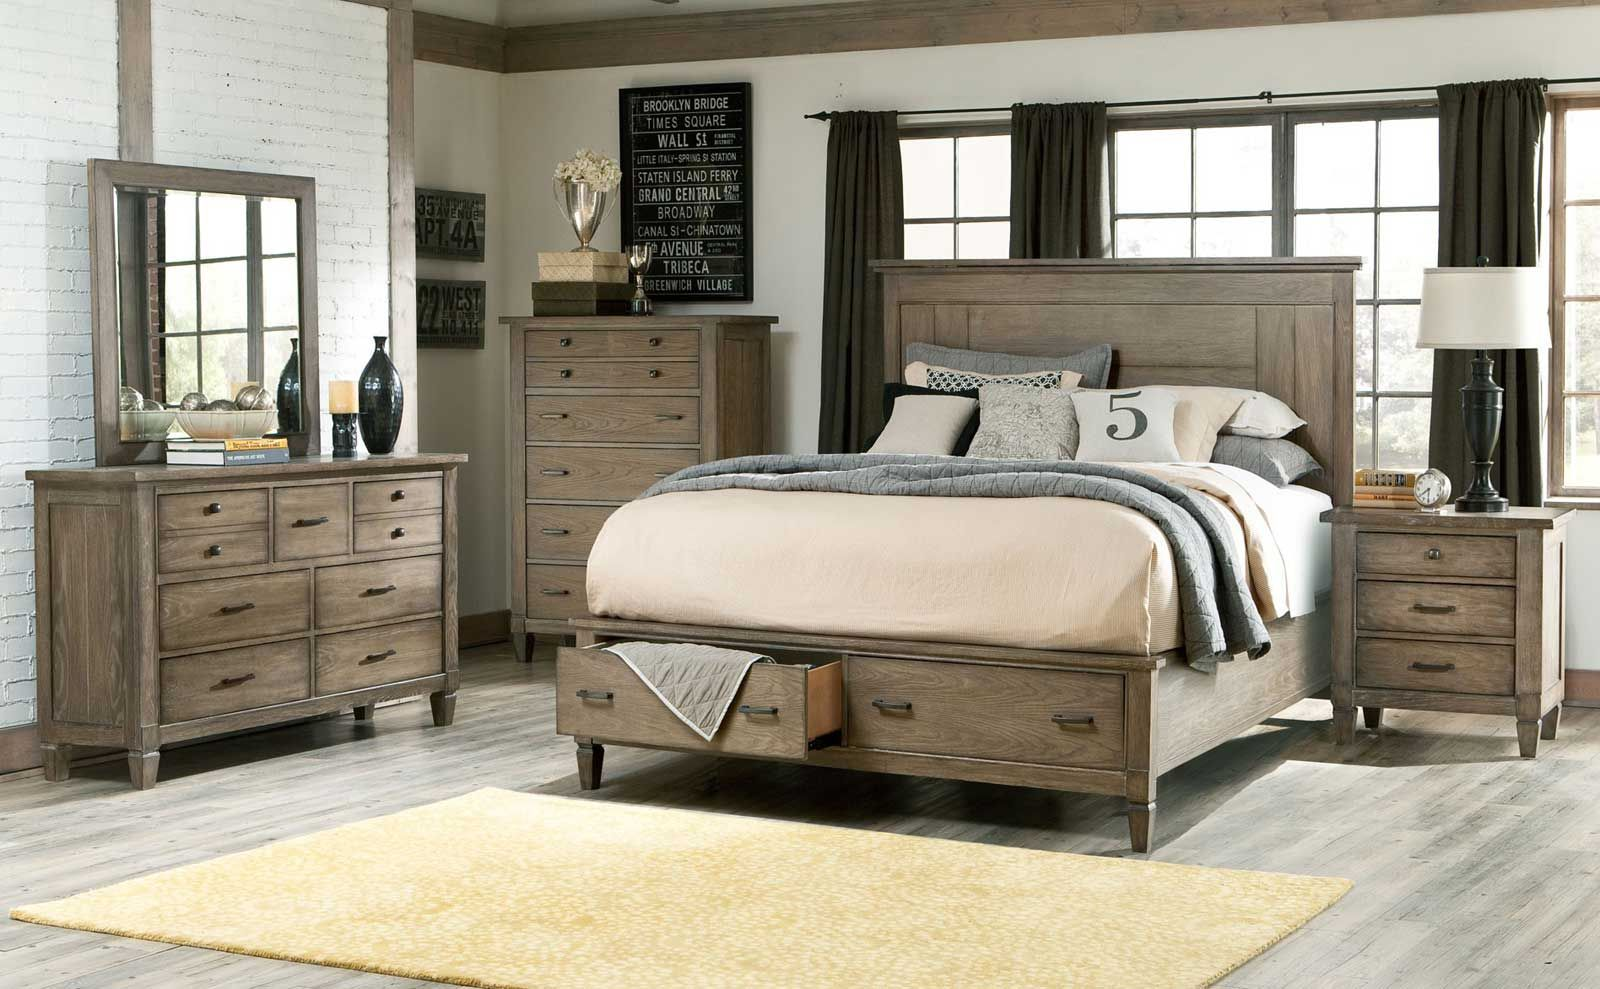 Rustic Wood Bedroom Furniture image result for wood king size bedroom sets | farm house master